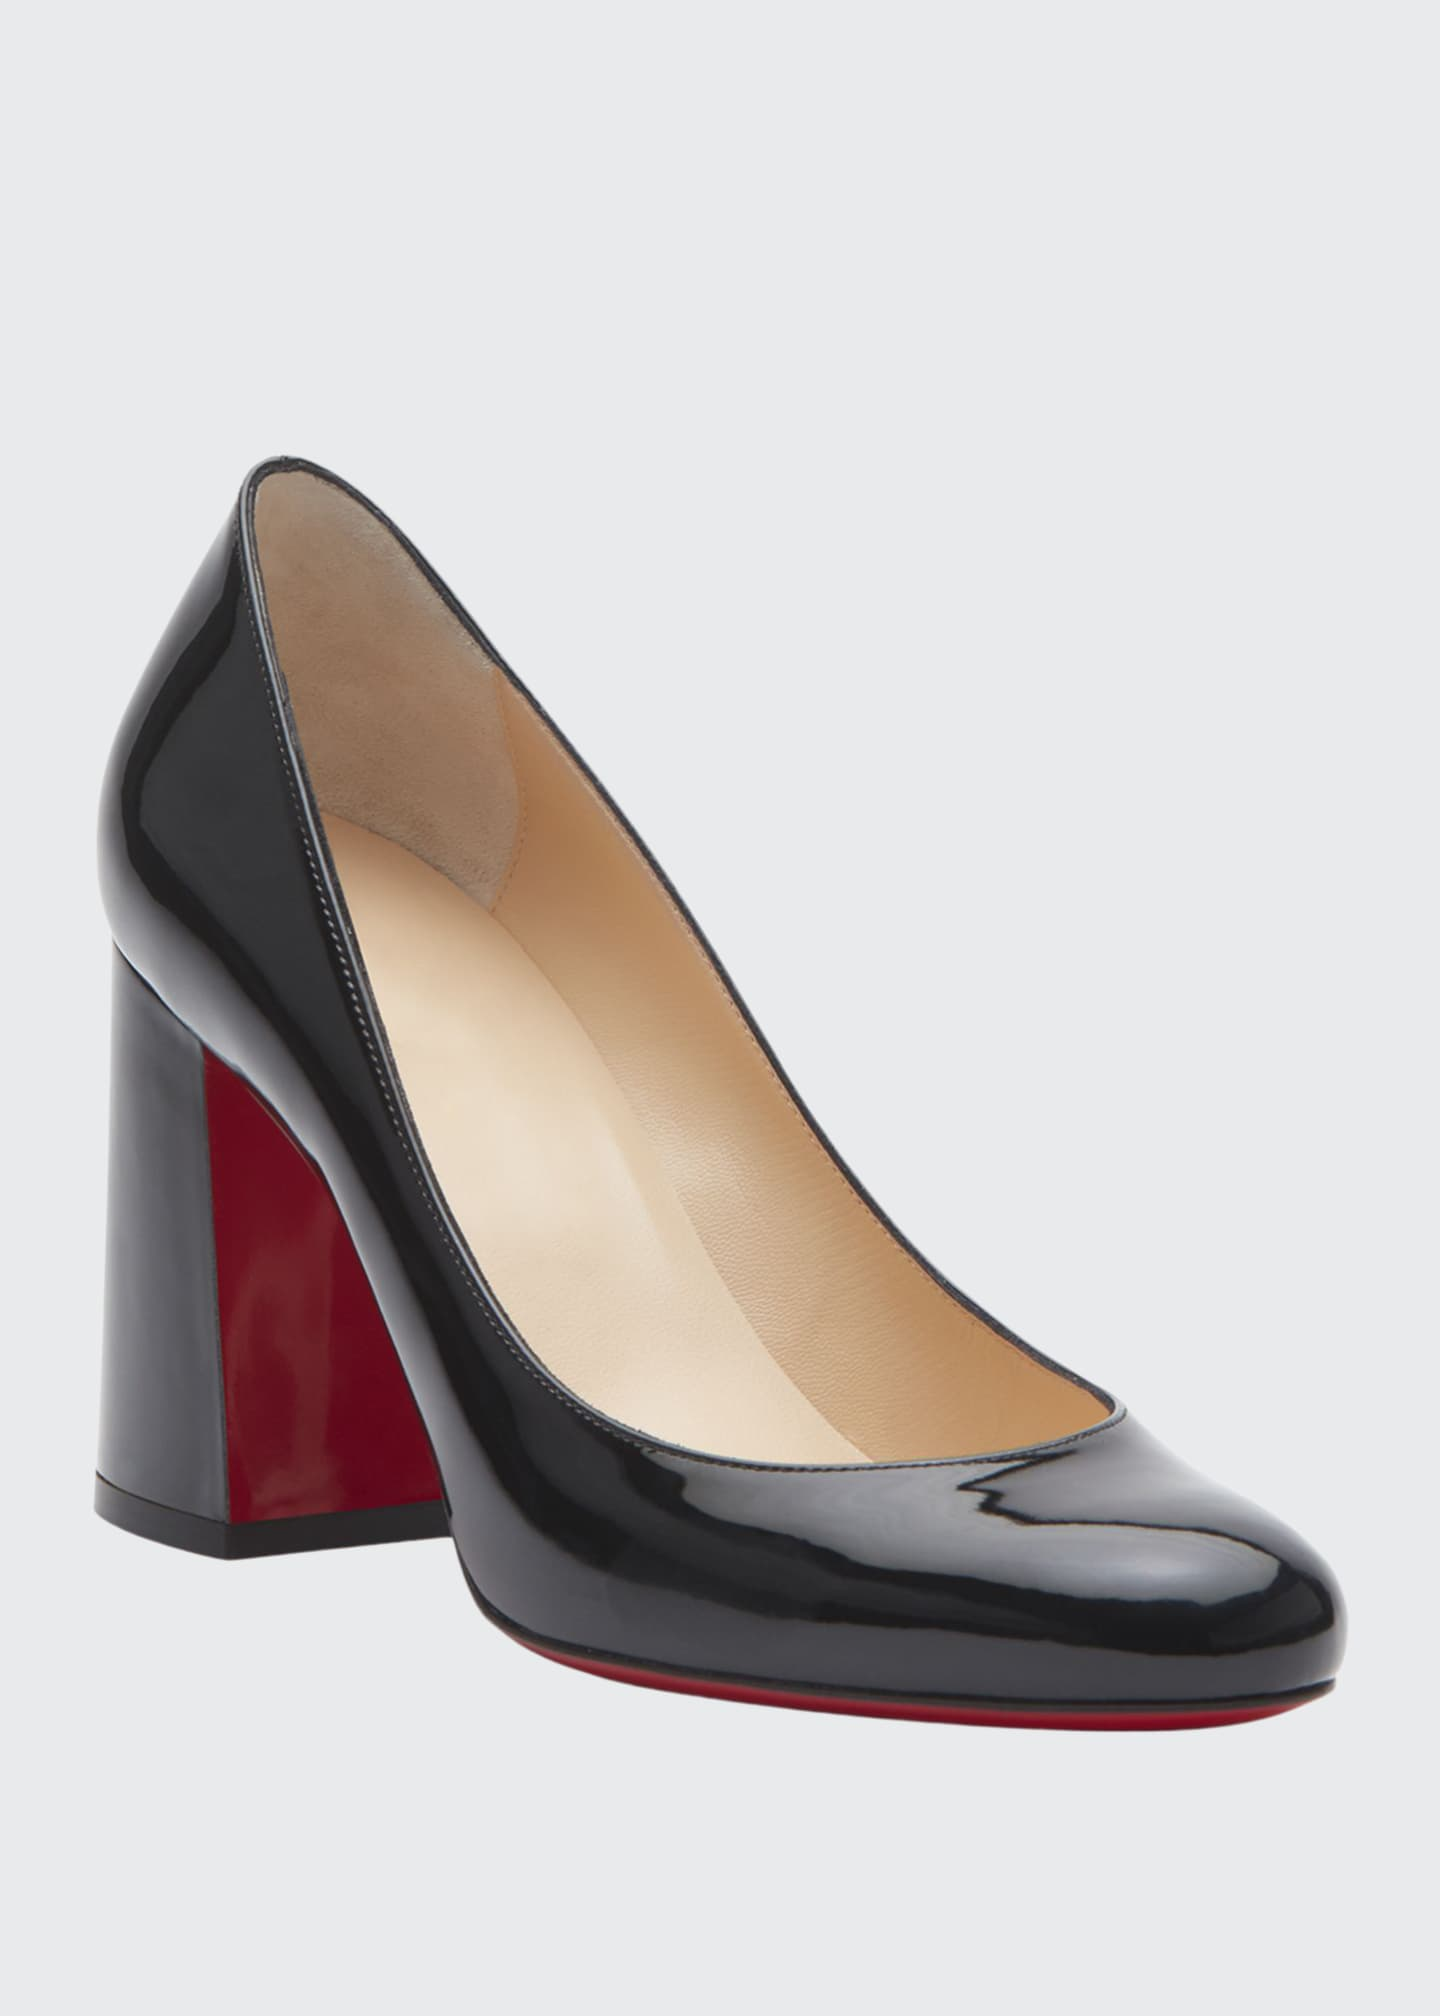 Image 1 of 5: Baobab 85 Patent Red Sole Pumps